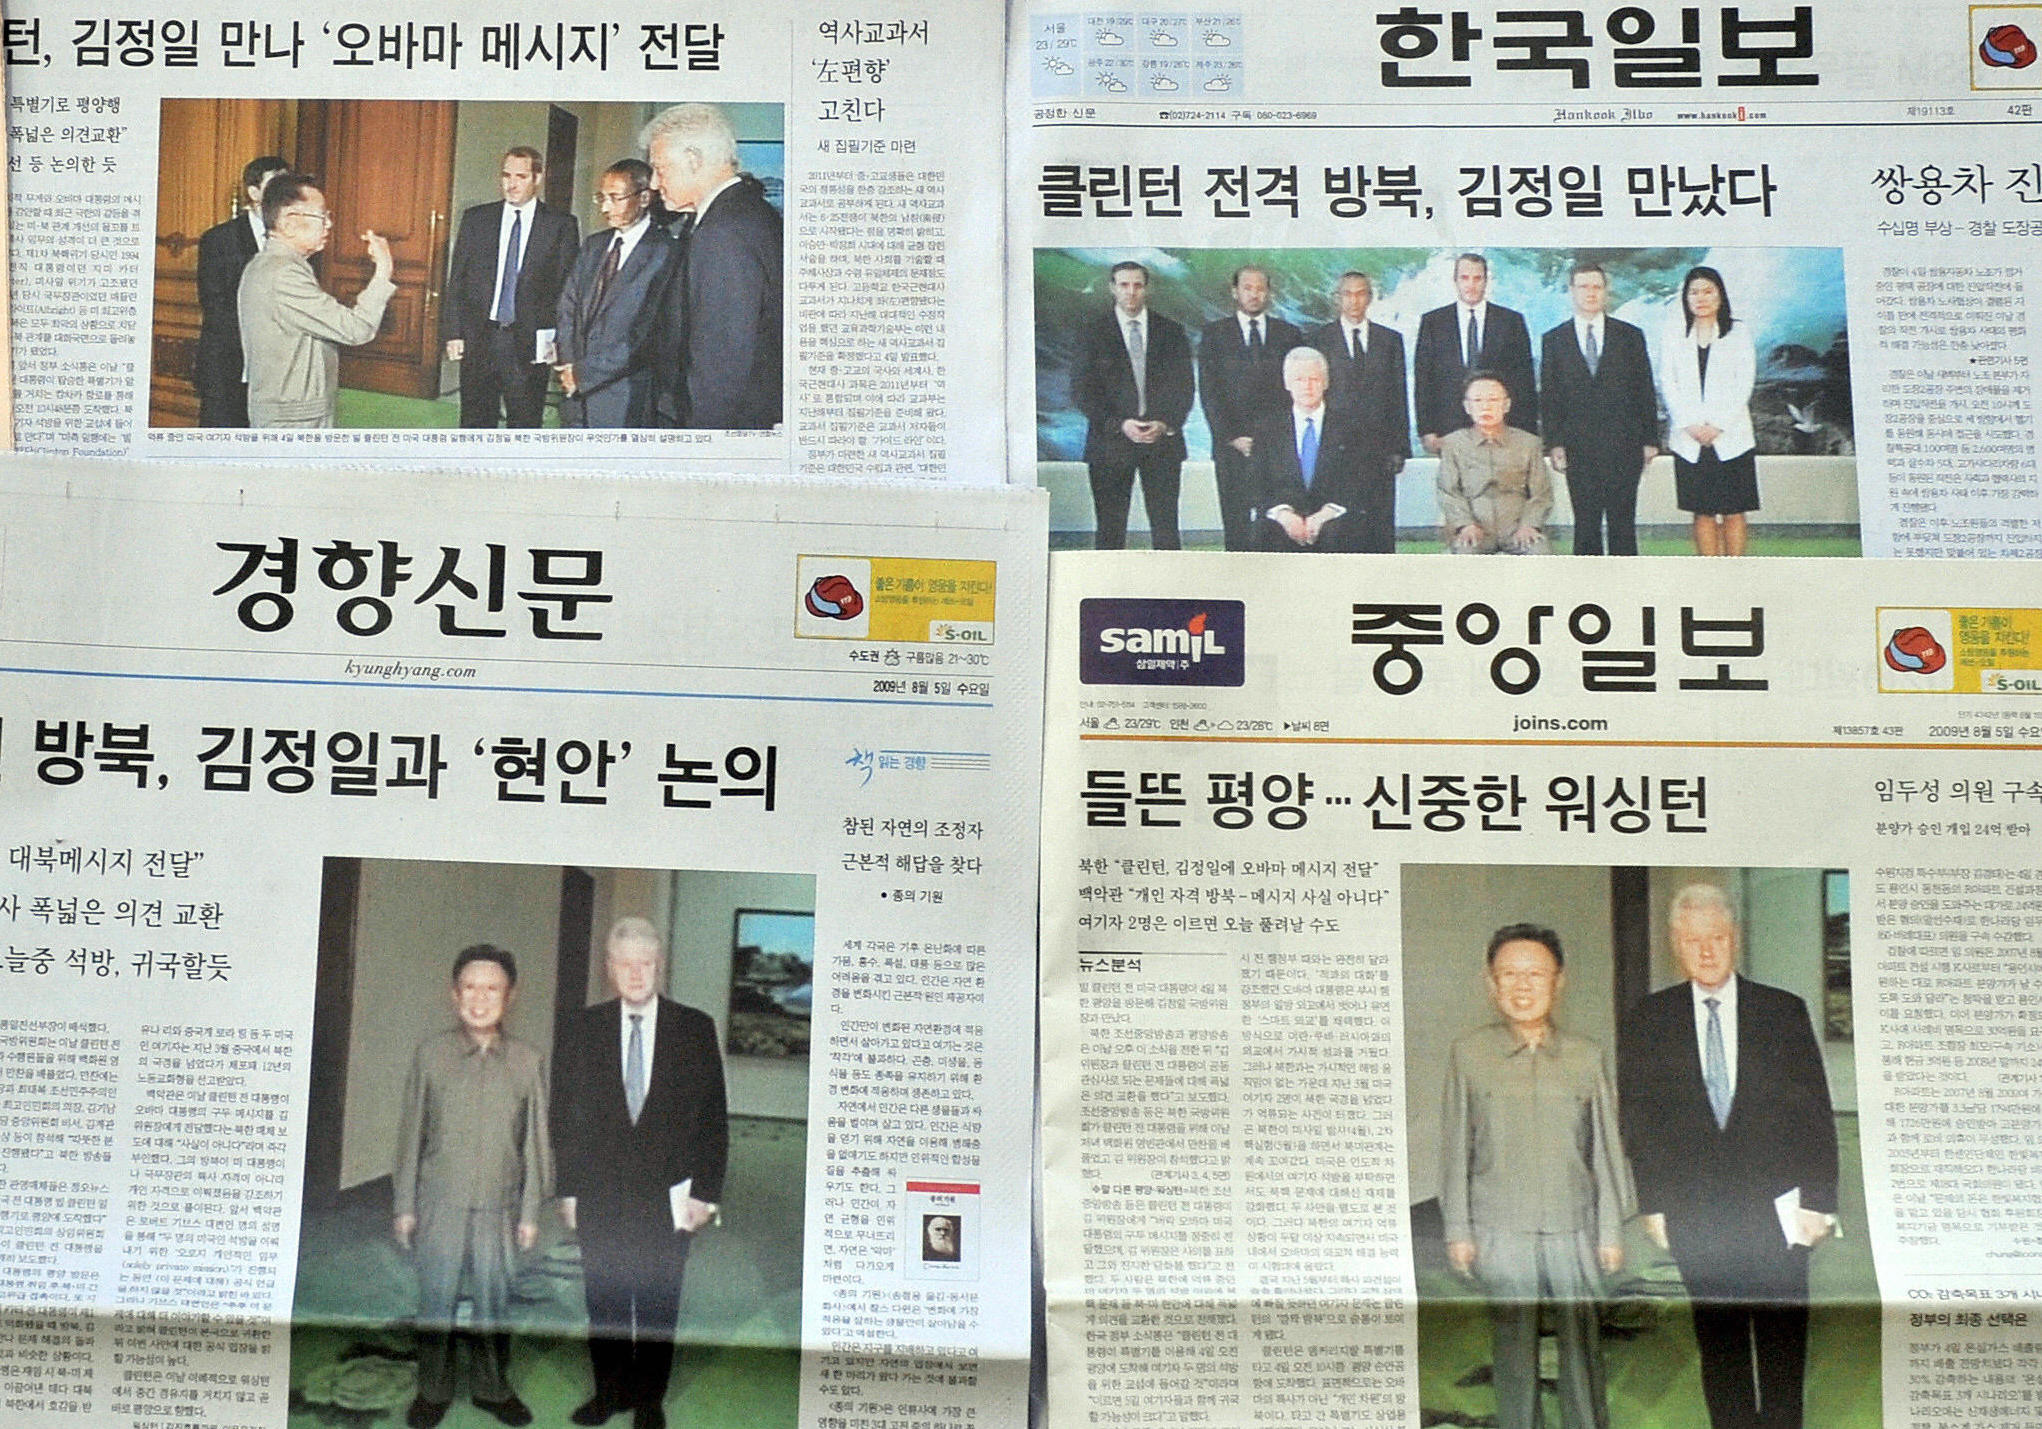 US president Bill Clinton's visit to North Korea meets Kim Jong-Il